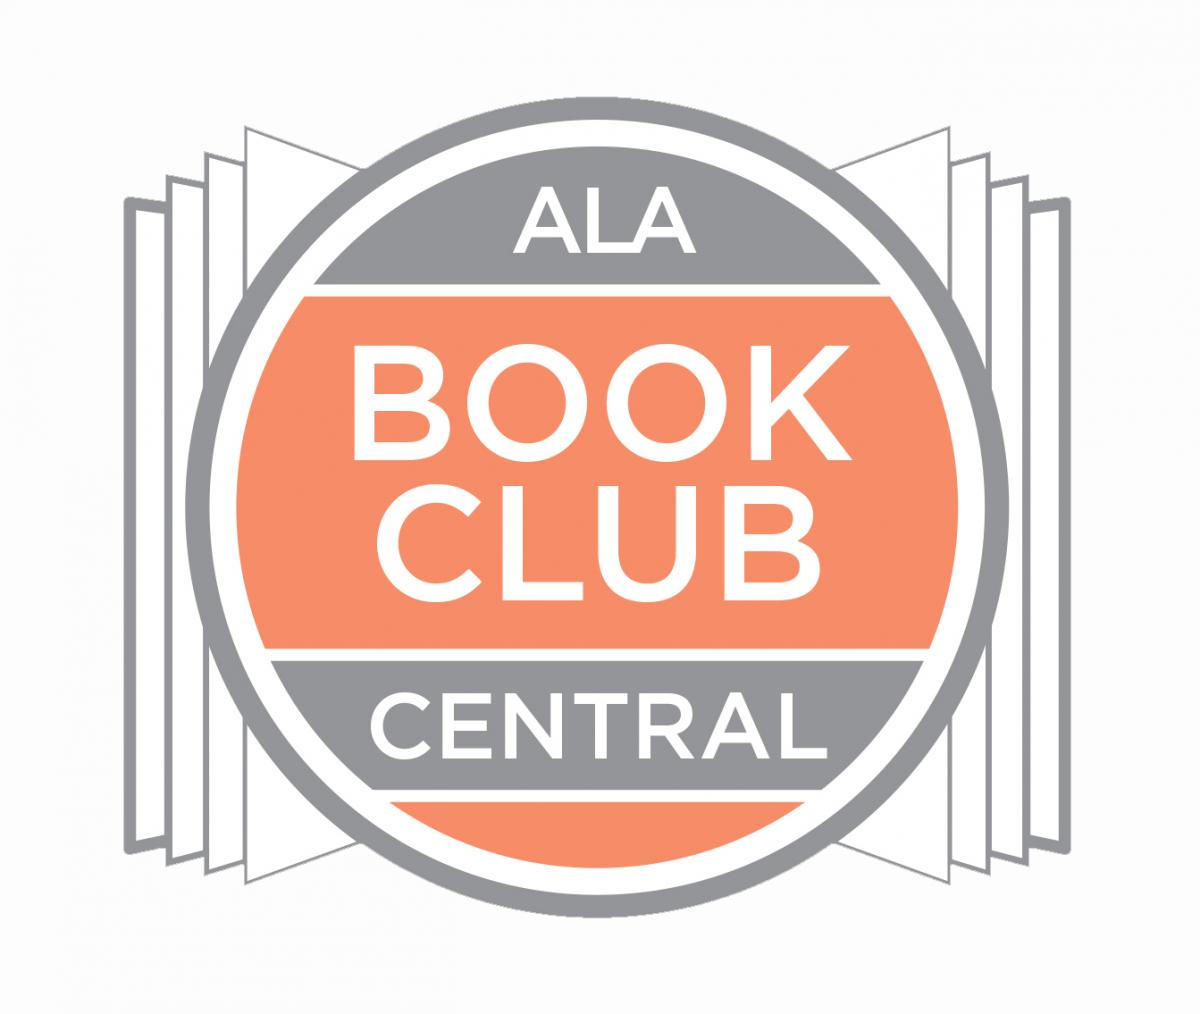 Book Club Central logo